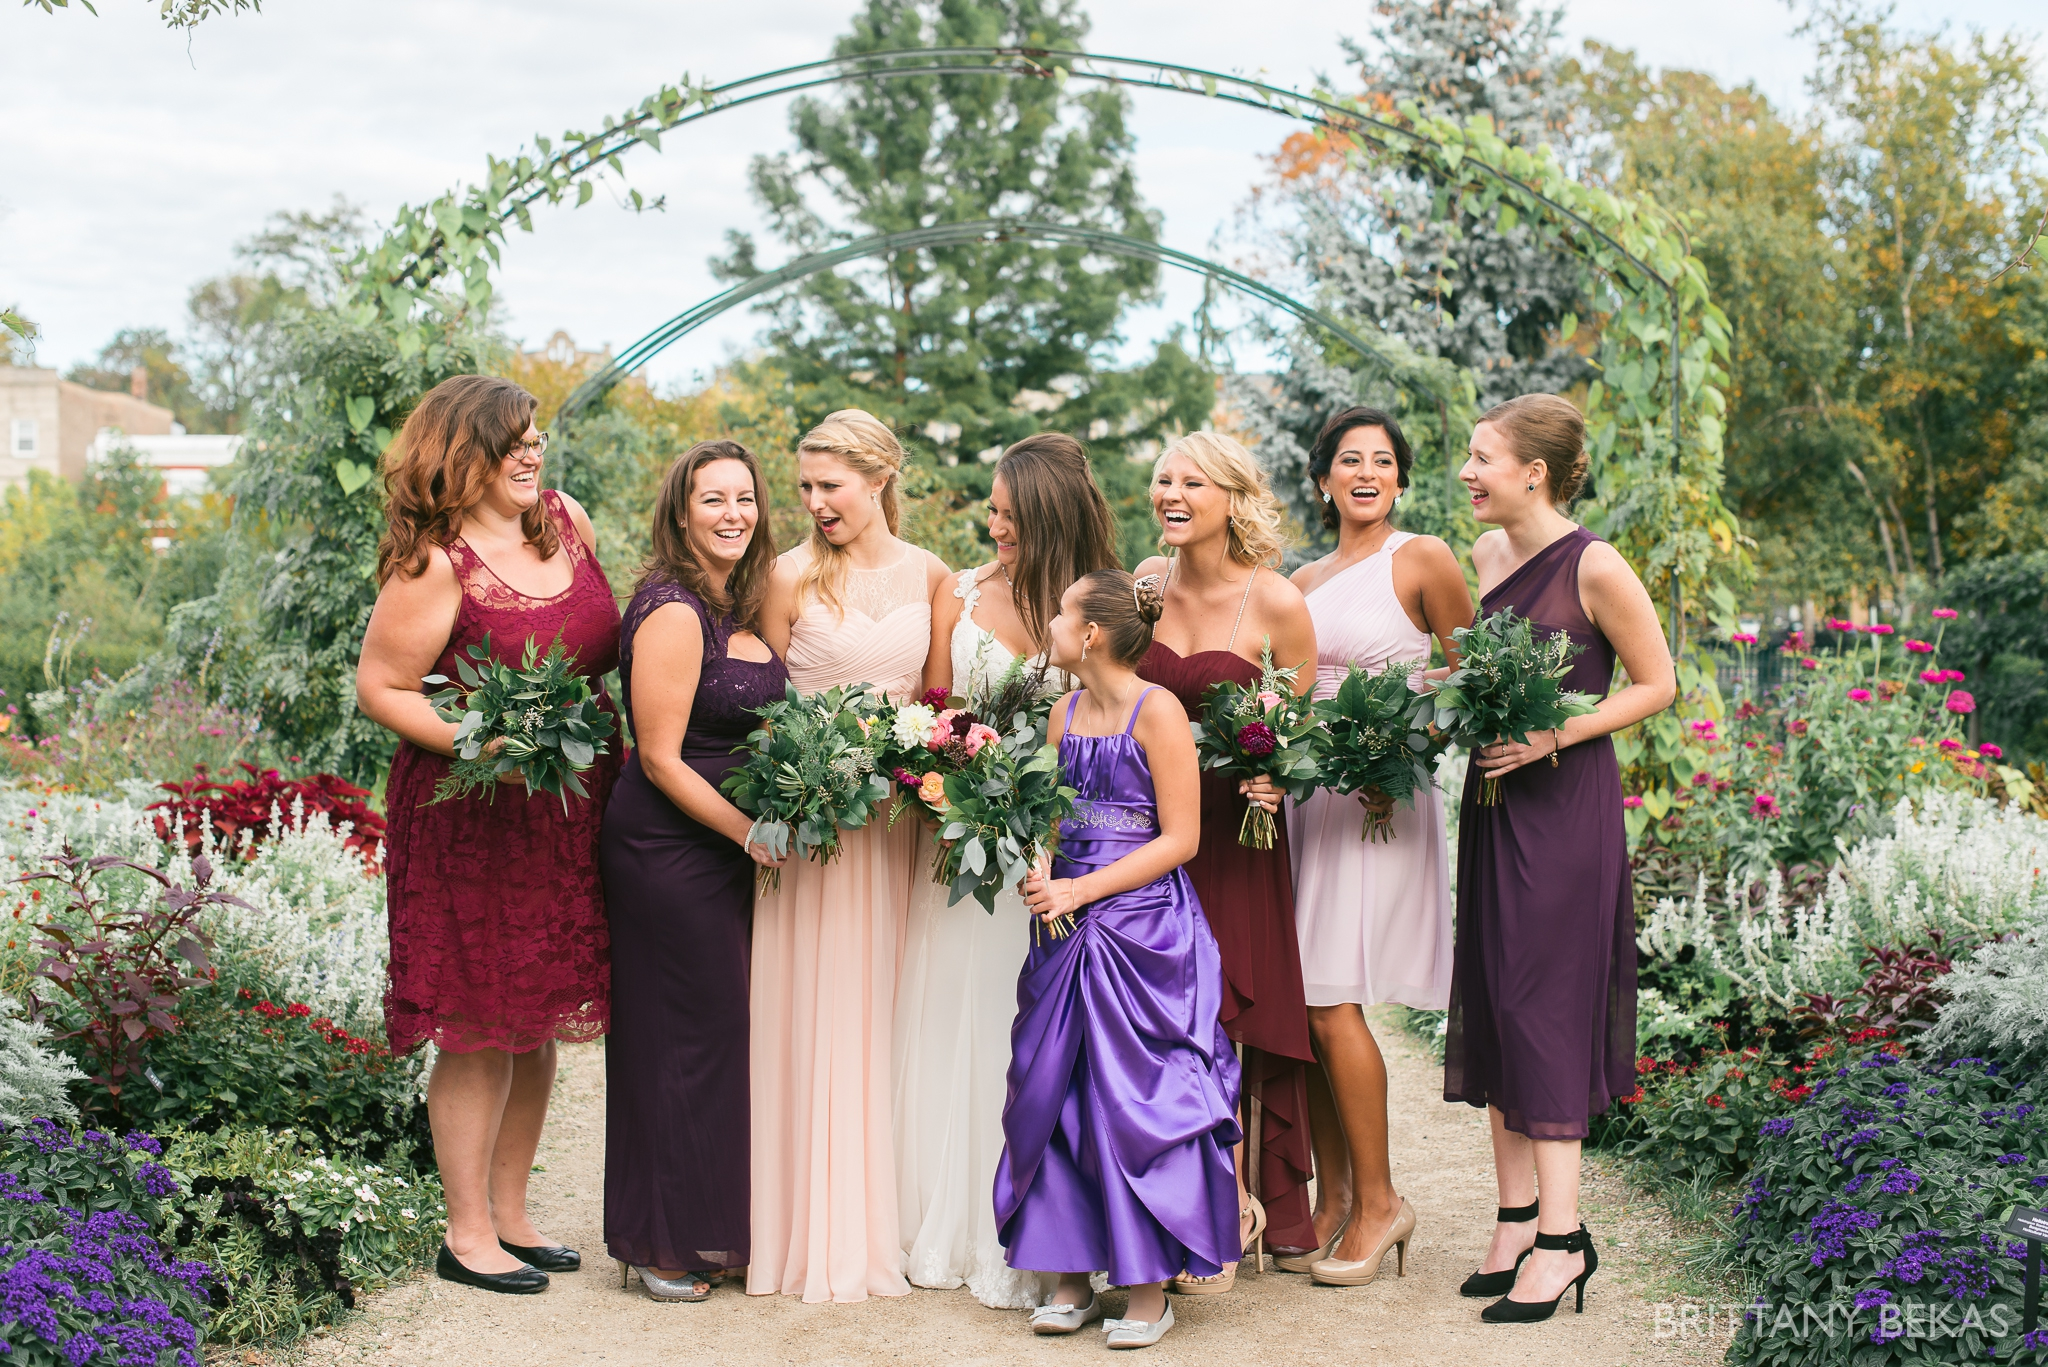 Chicago Wedding Garfield Park Conservatory Wedding Photos - Brittany Bekas Photography_0029